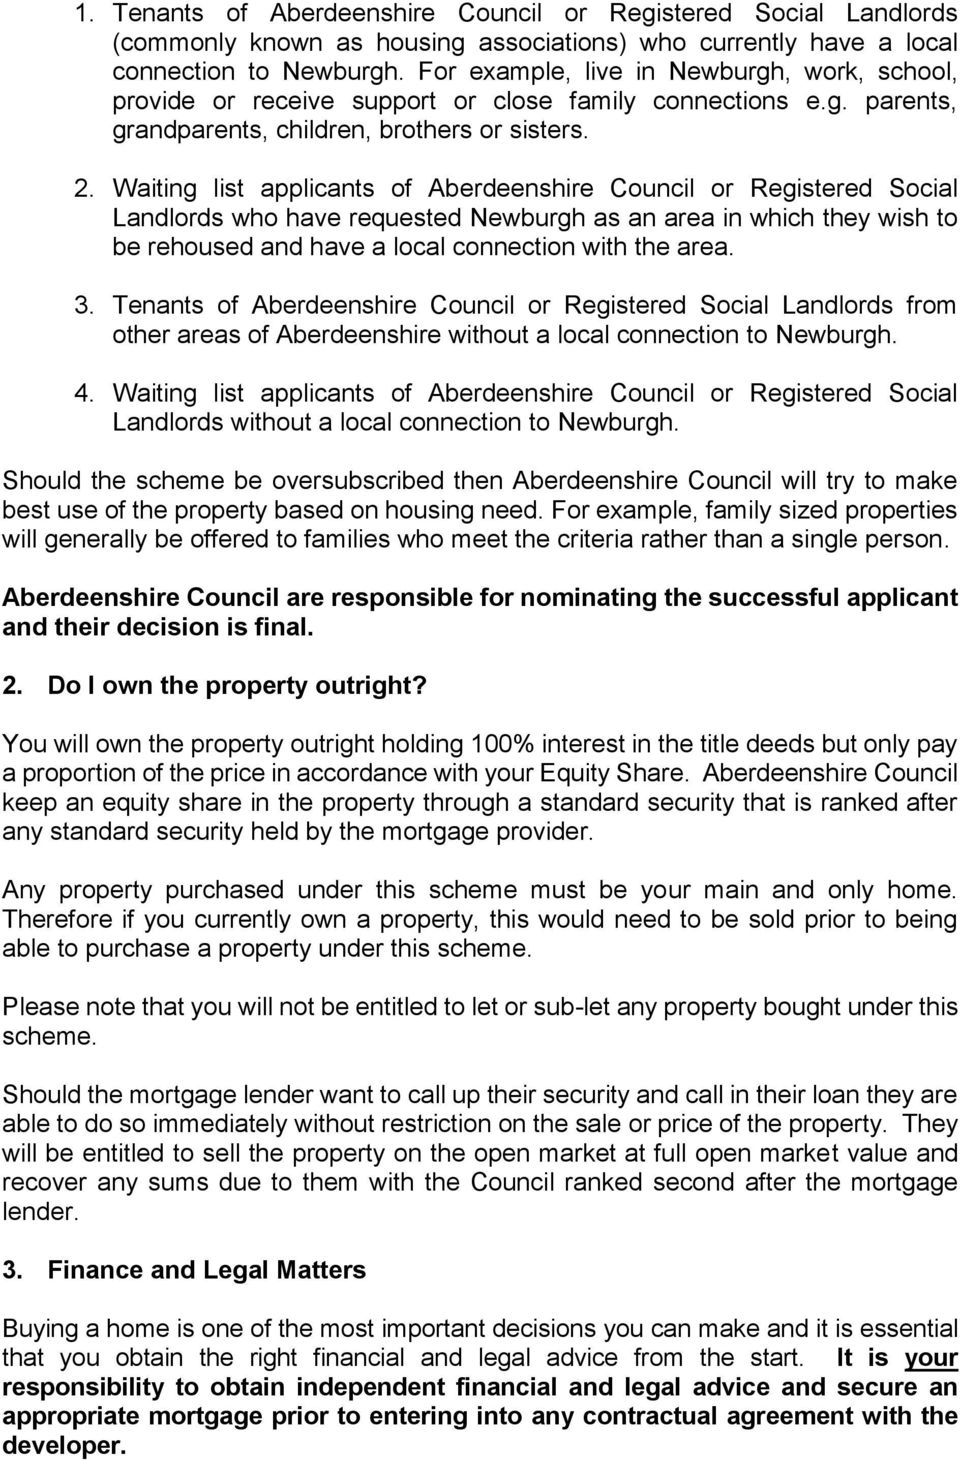 Waiting list applicants of Council or Registered Social Landlords who have requested Newburgh as an area in which they wish to be rehoused and have a local connection with the area. 3.